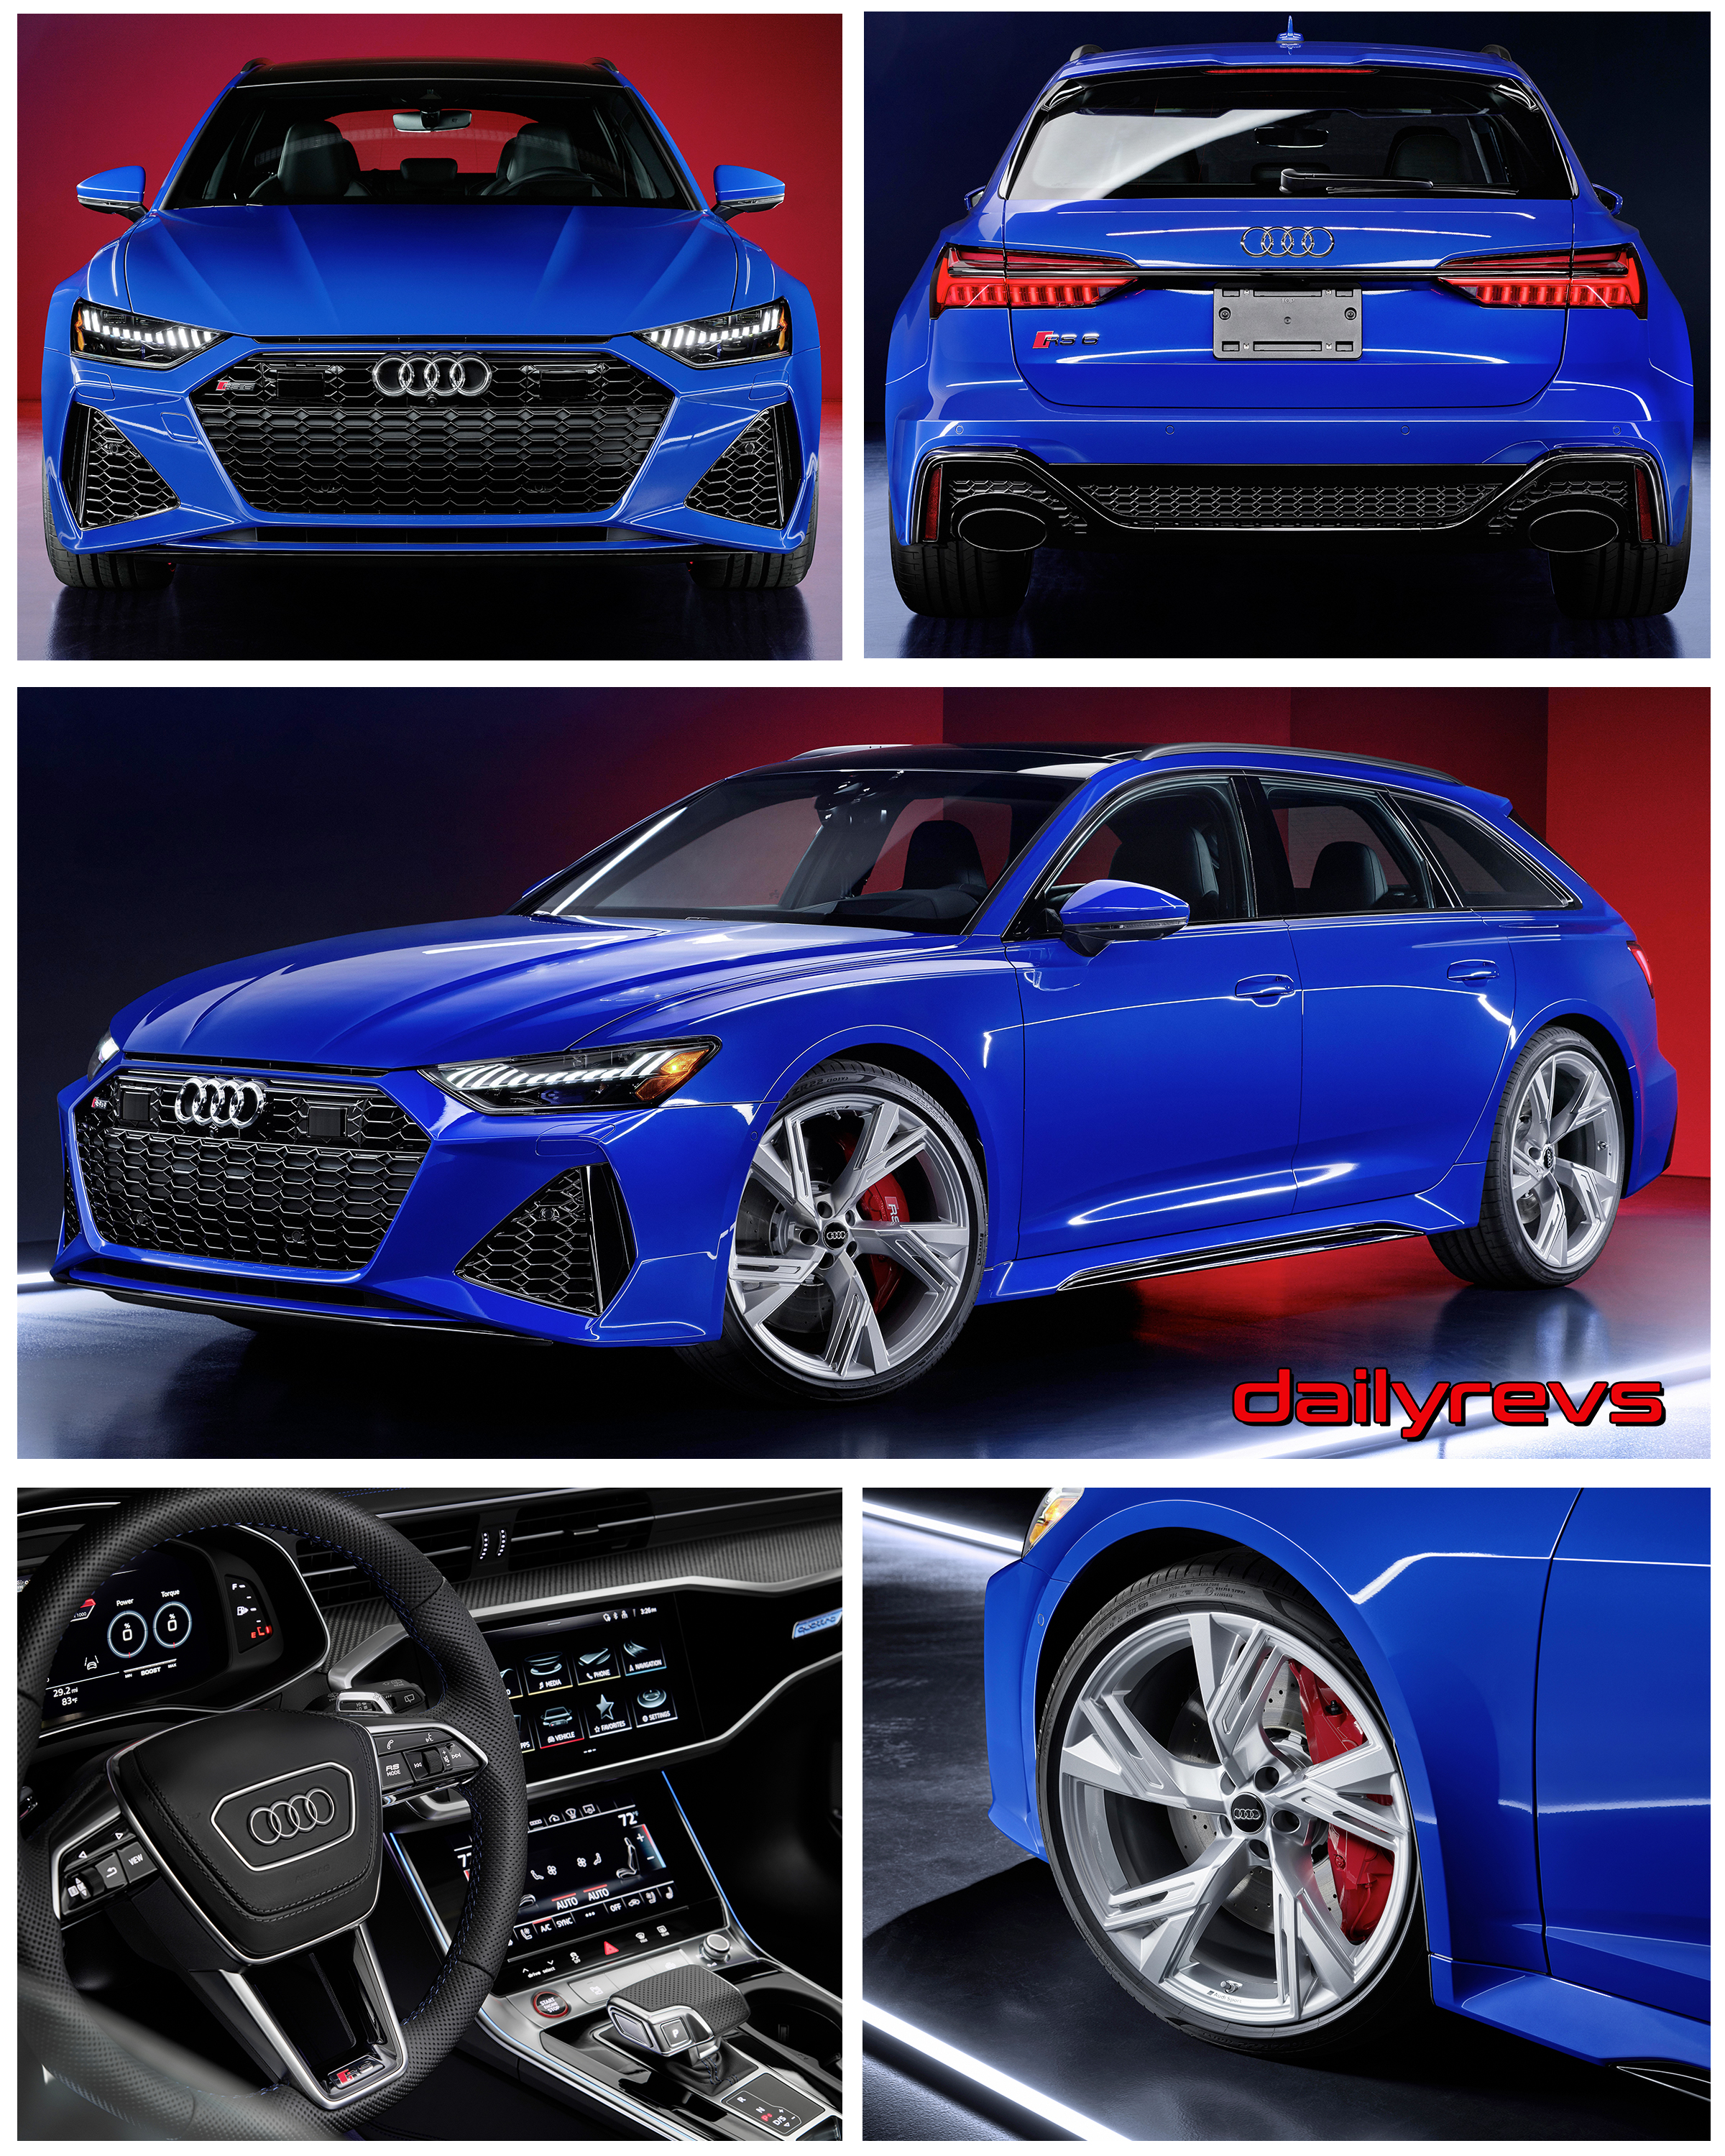 2021 Audi RS6 Avant RS Tribute Edition - Dailyrevs